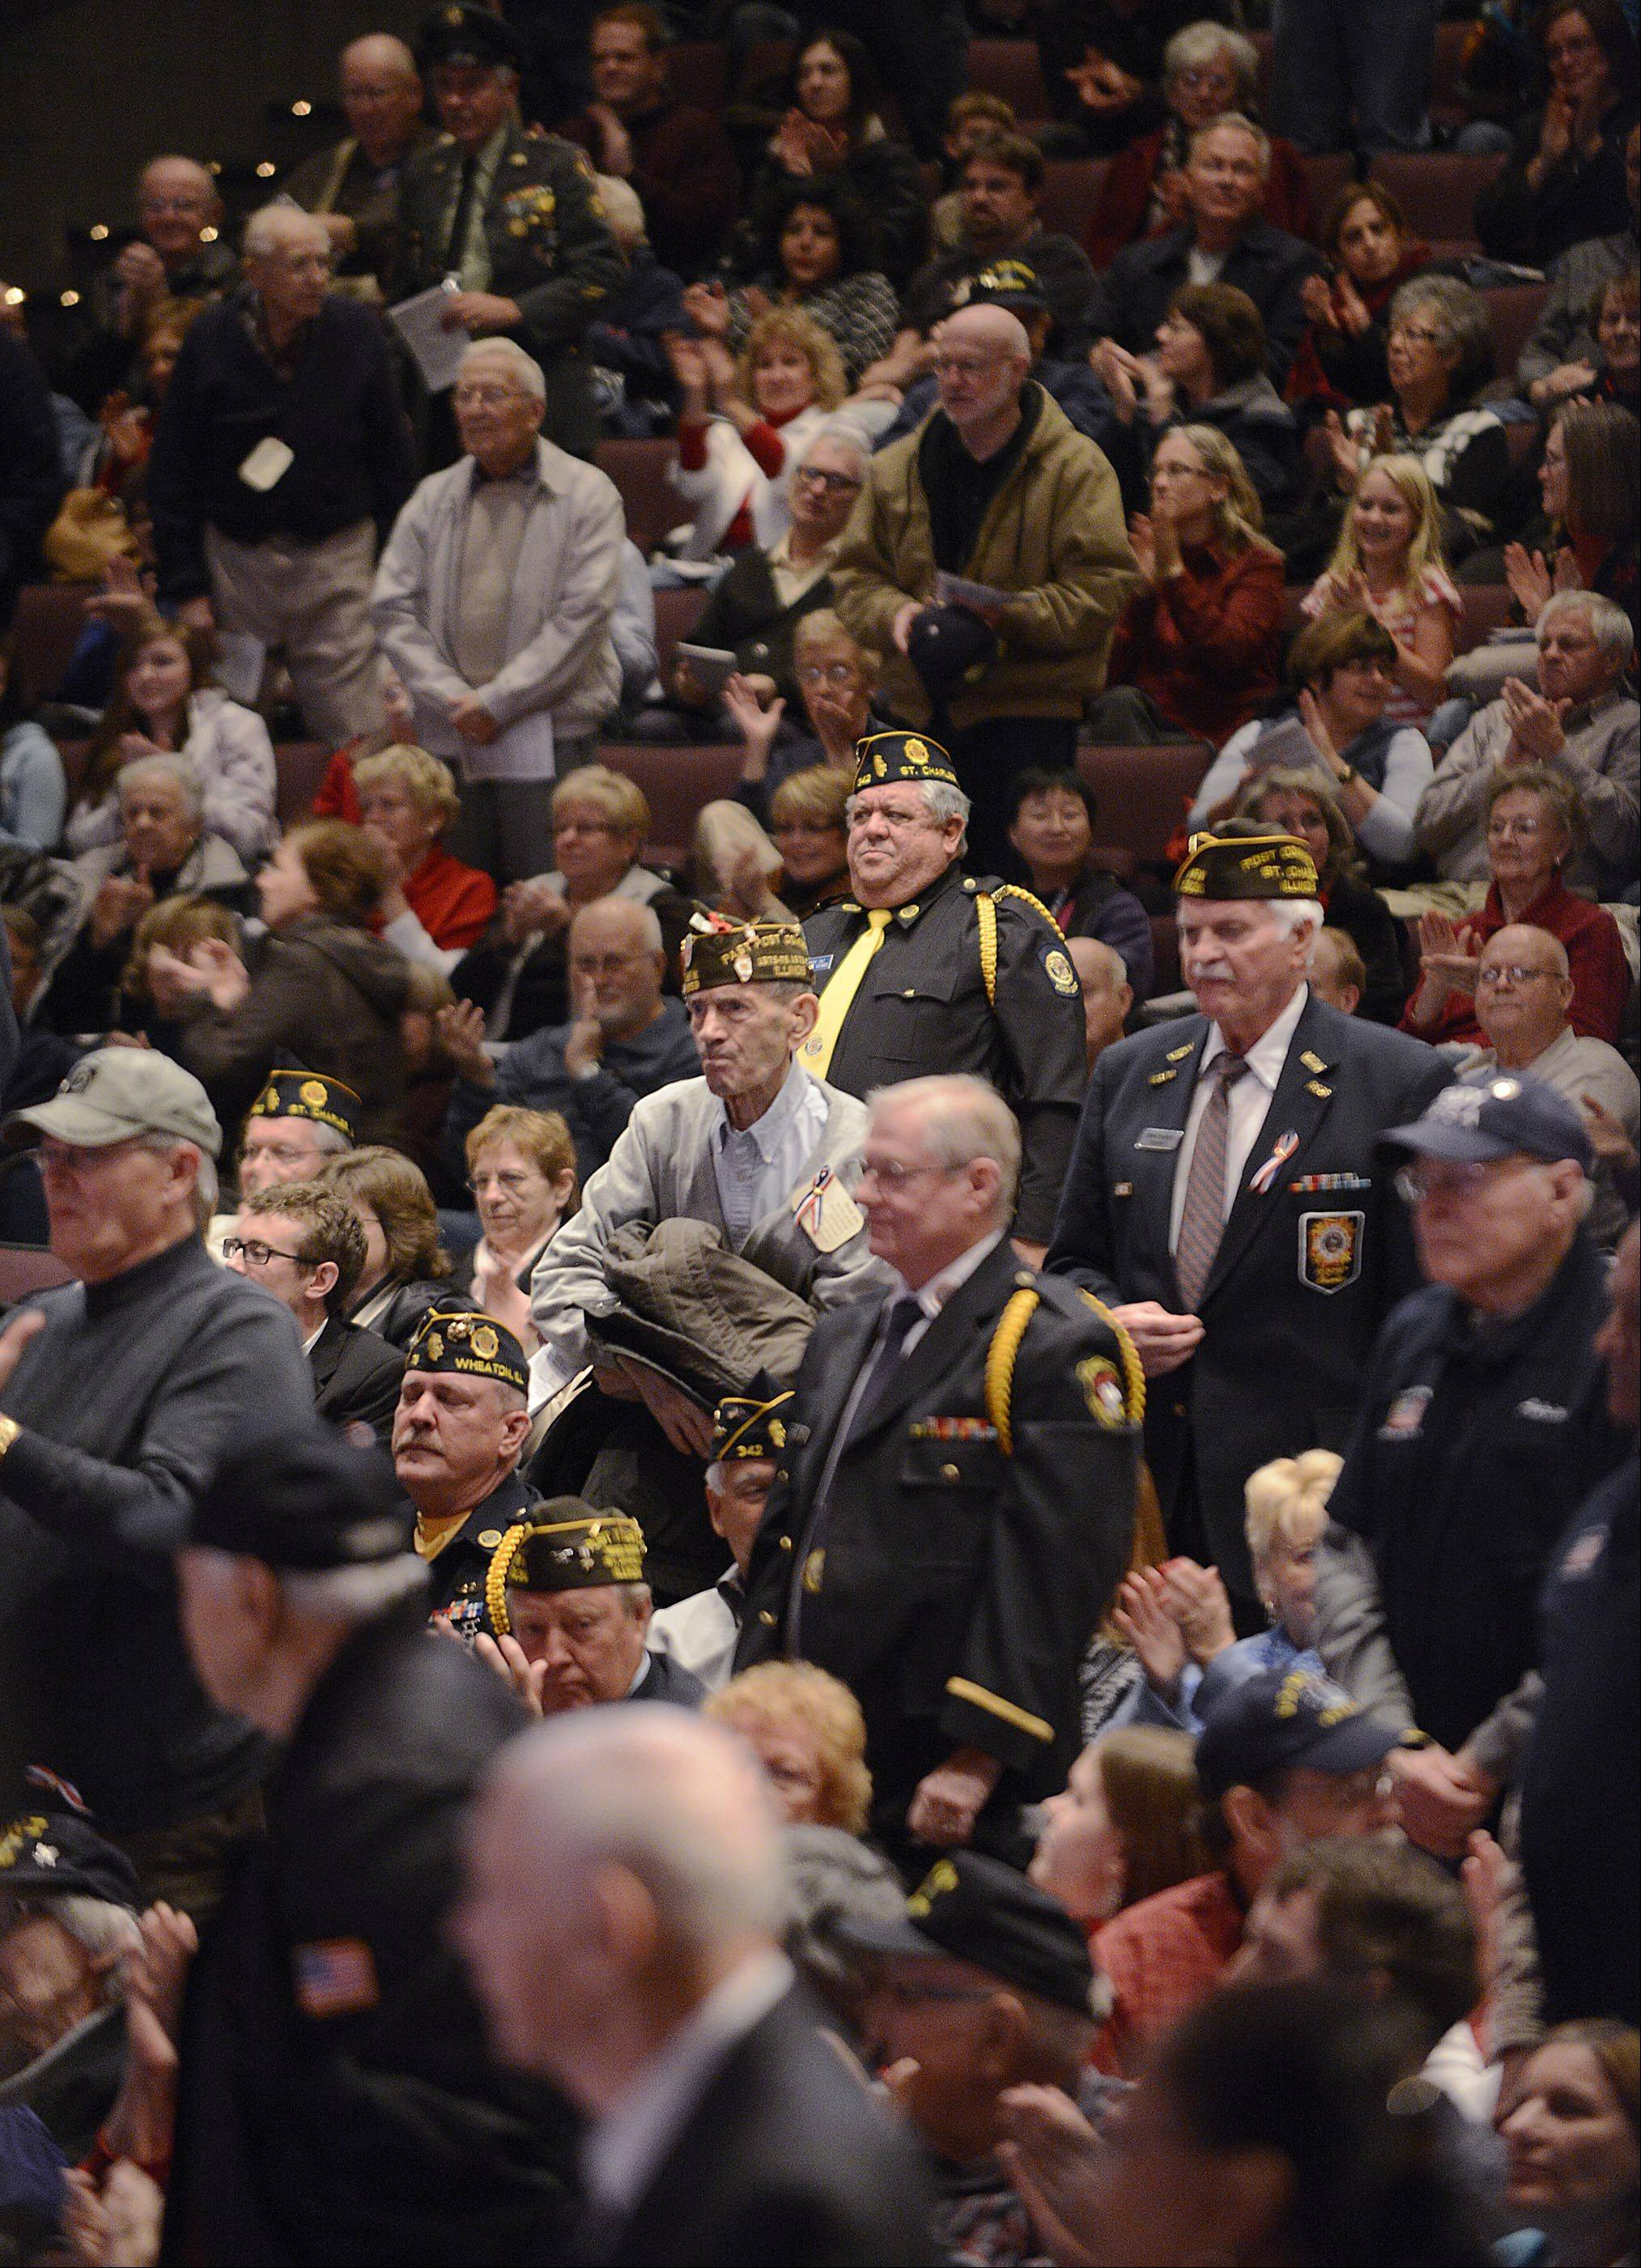 Veterans of each of the armed services were invited to stand as their theme song was played Monday at a Veterans Celebration Concert at St. Charles North High School. The school's student musicians played patriotic music during the program. More than 900 people attended.